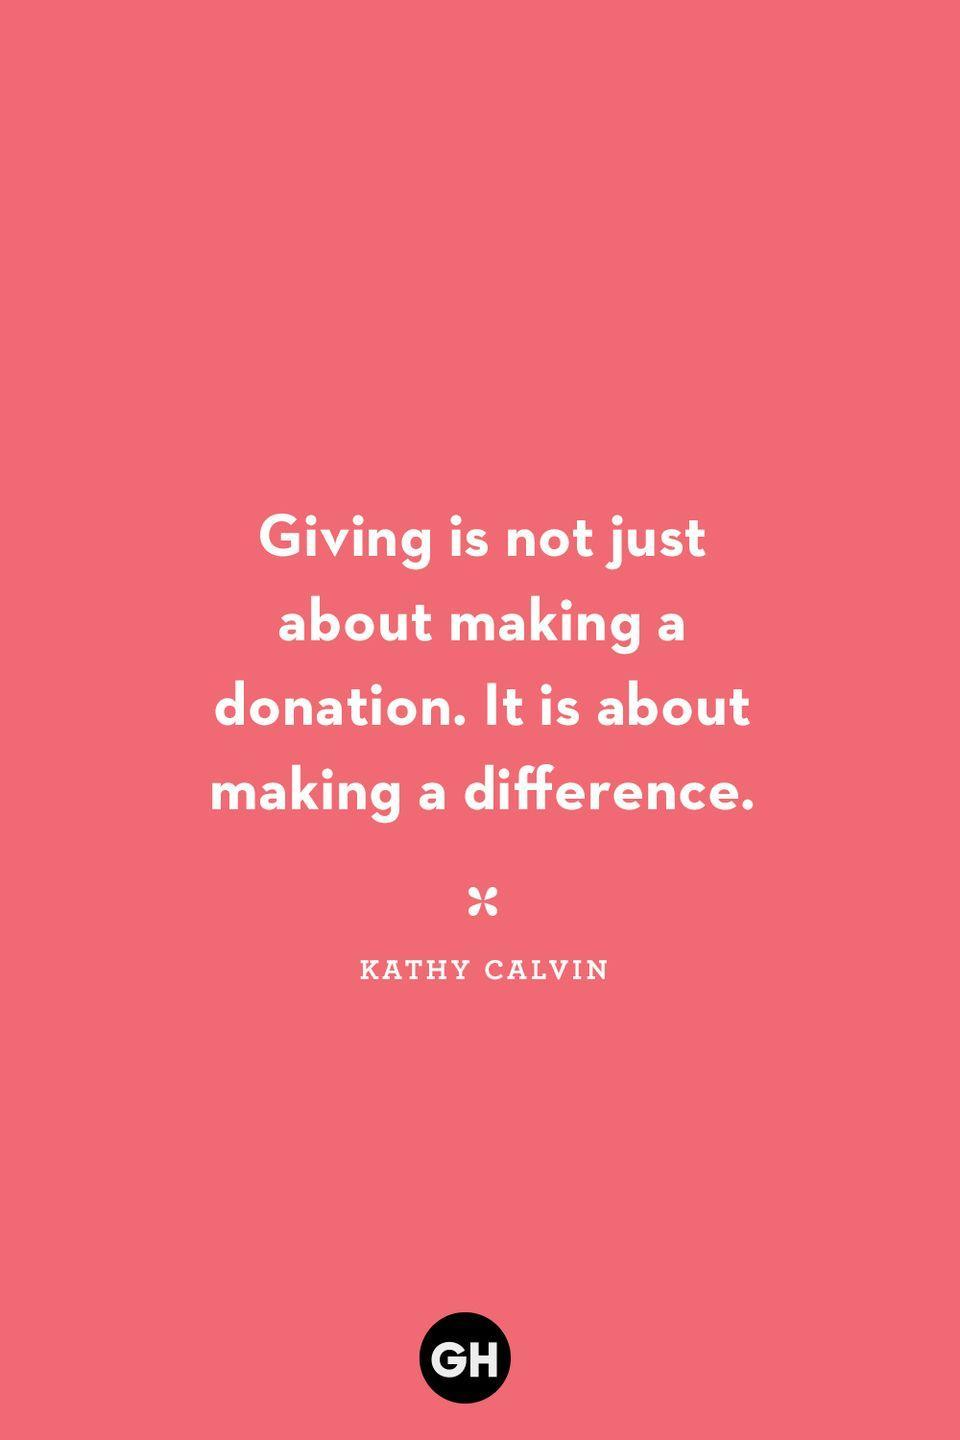 <p>Giving is not just about making a donation. It is about making a difference.</p>